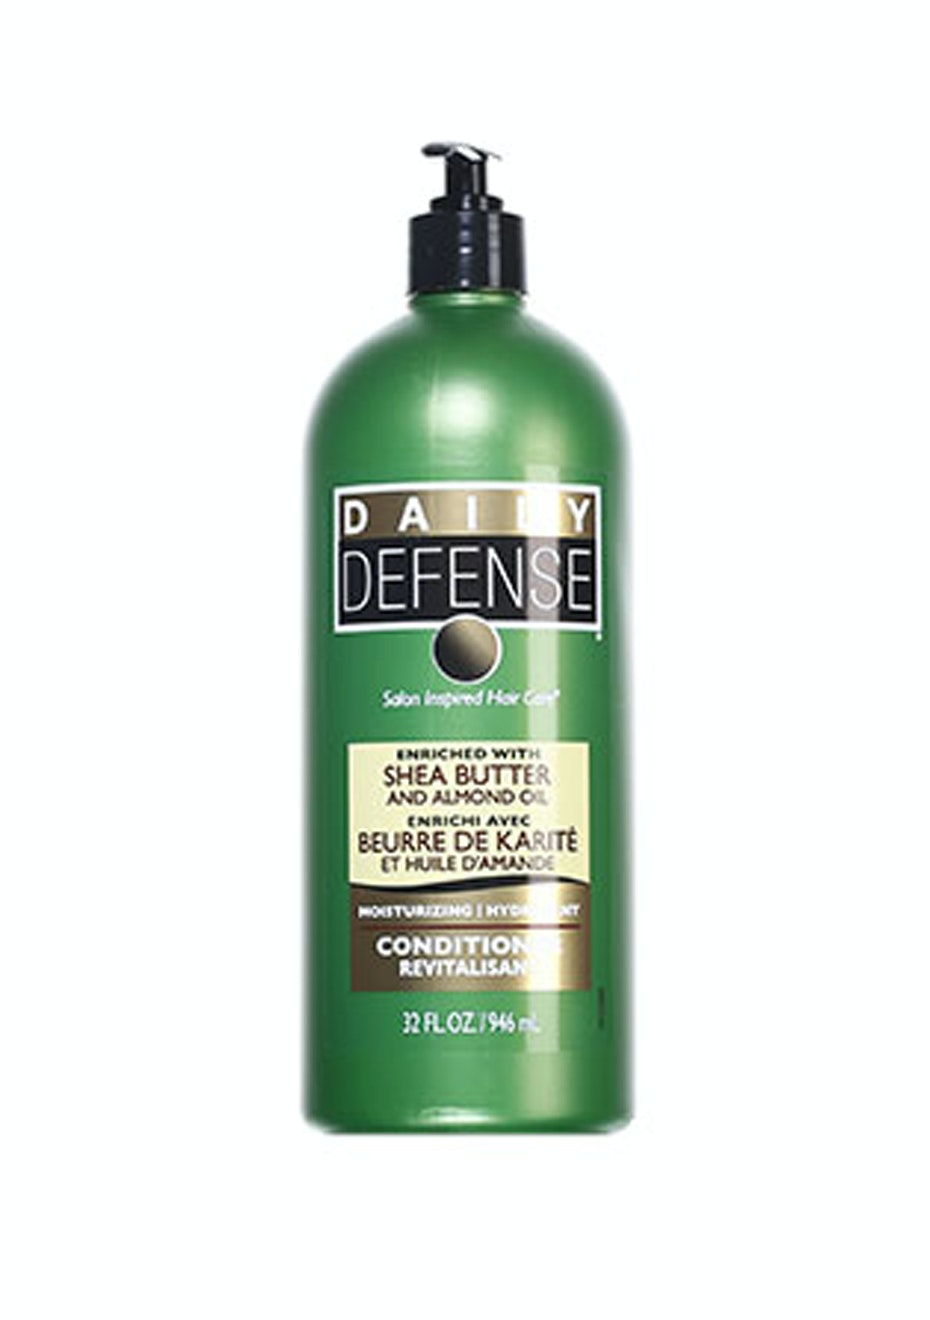 Daily Defense Shea Butter Conditioner 946ml